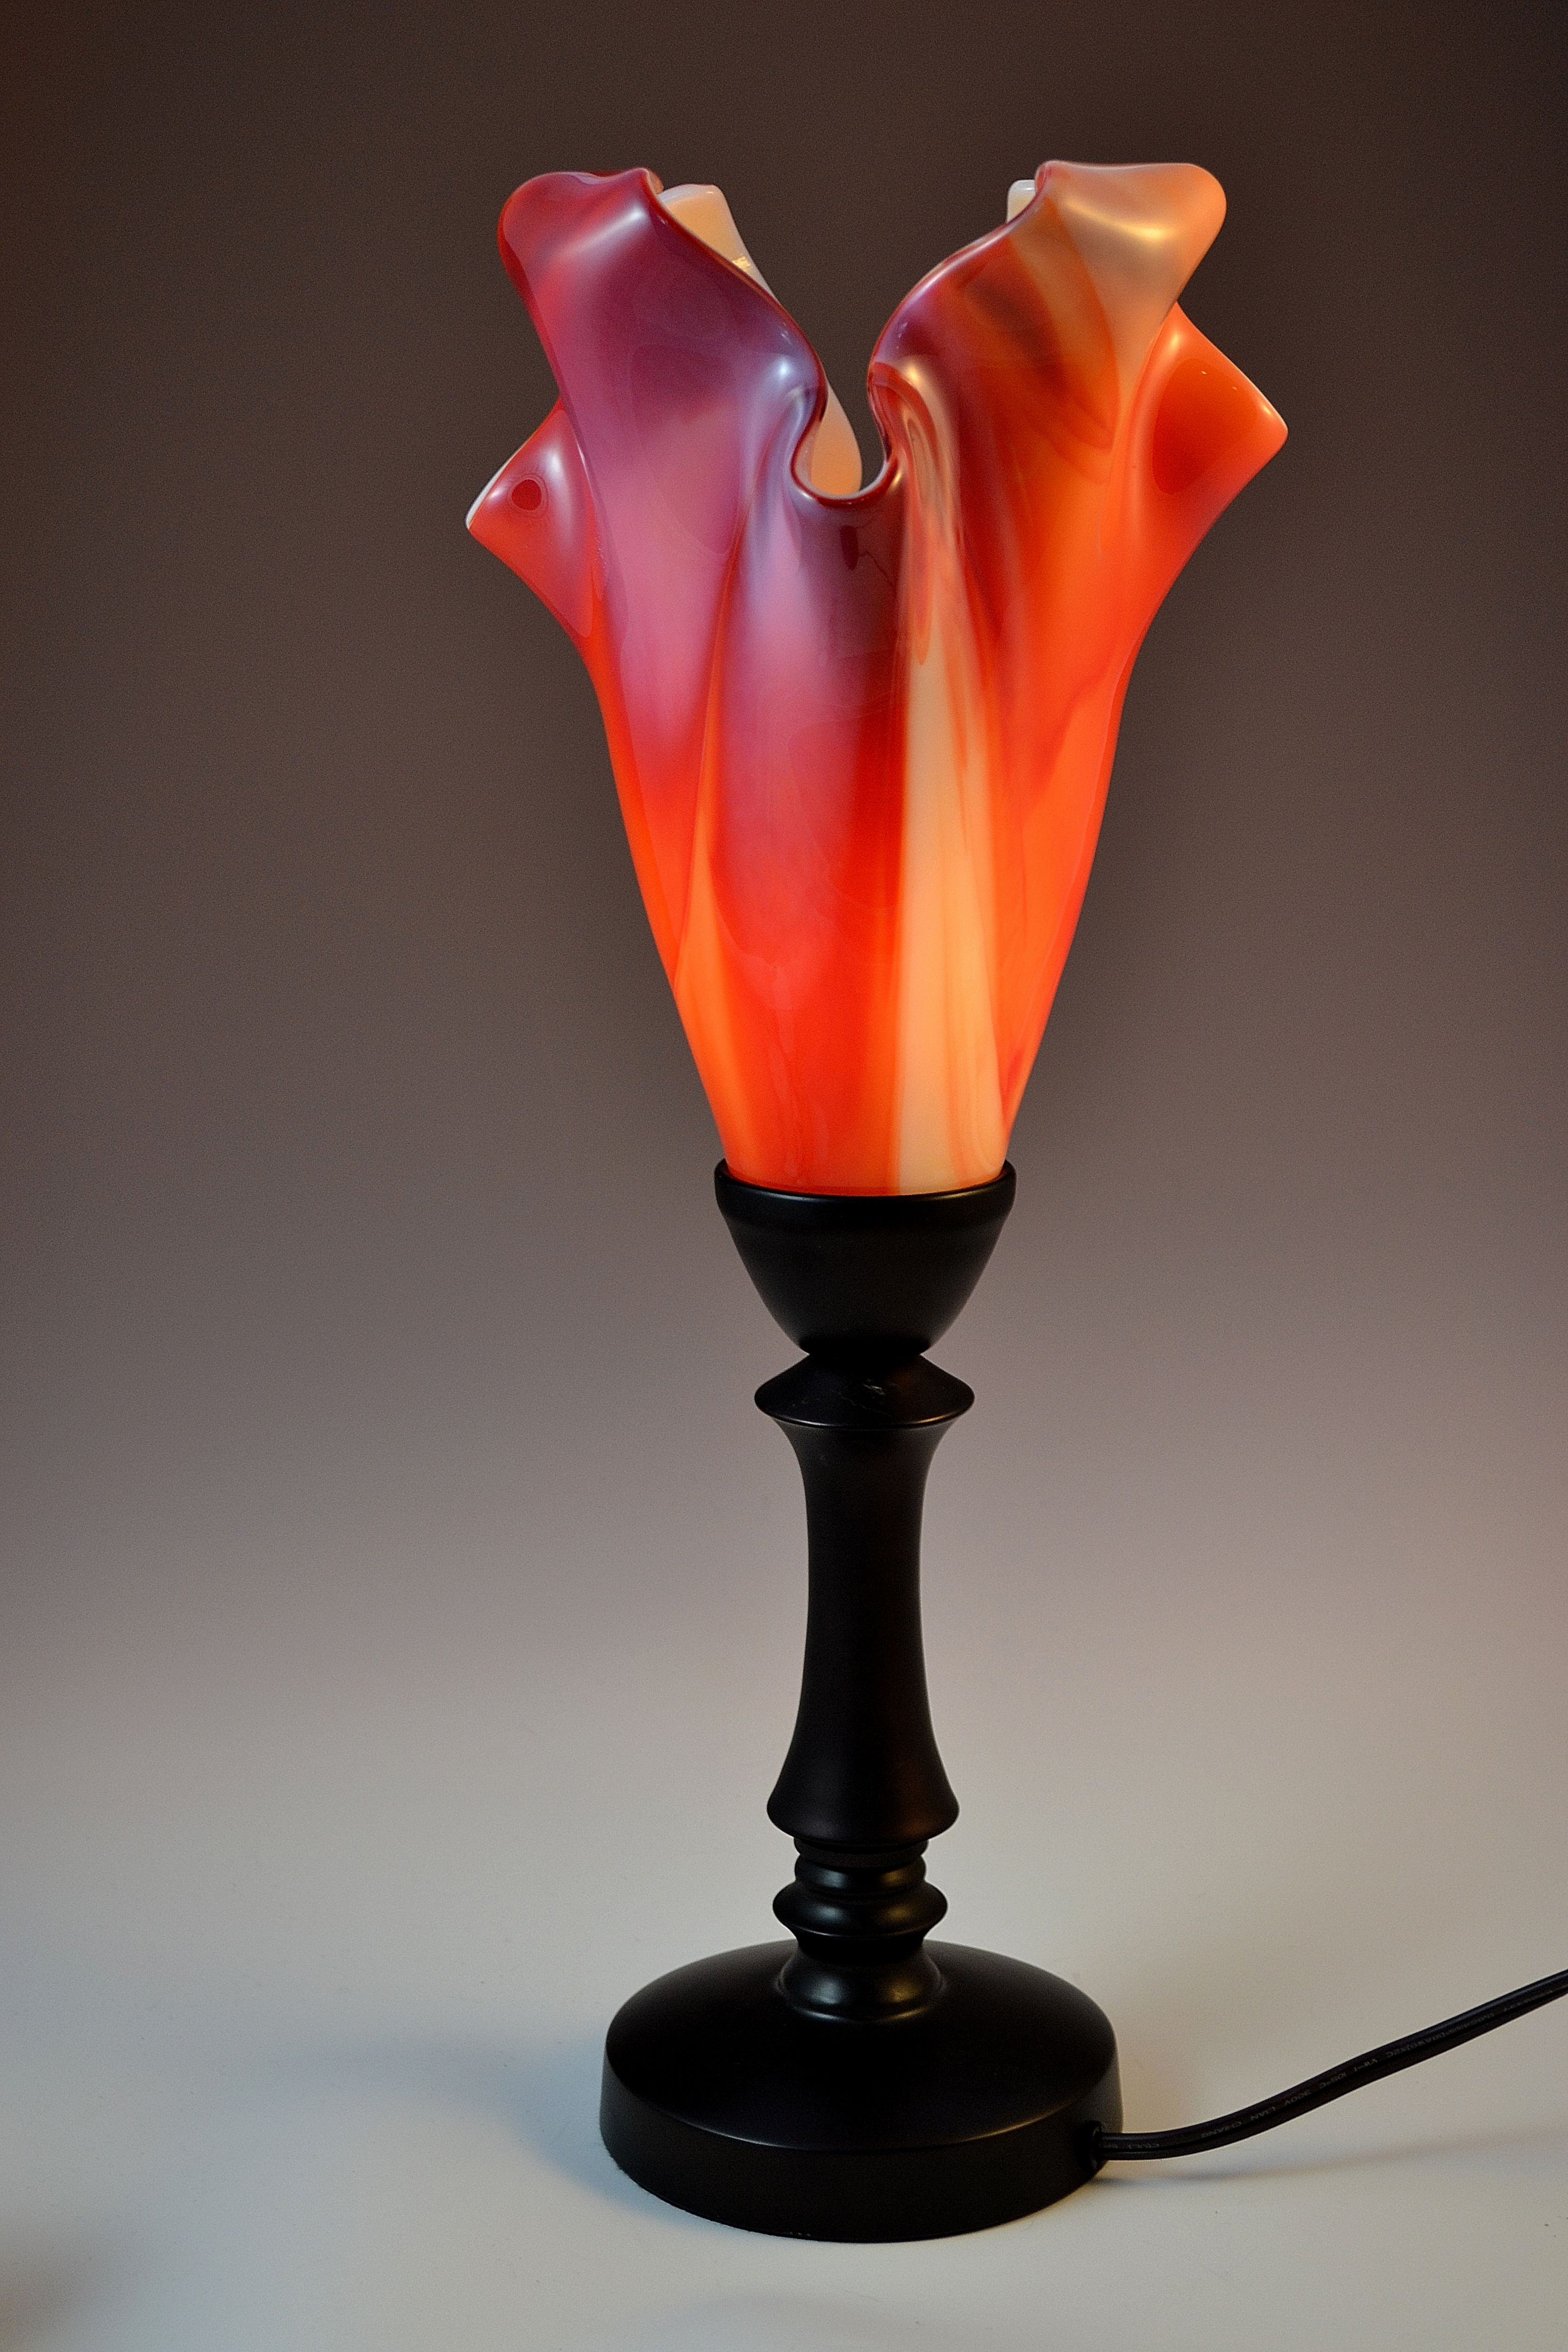 Lucas Krenzin Fused Glass Art 187 Abstract Orange Table Lamp